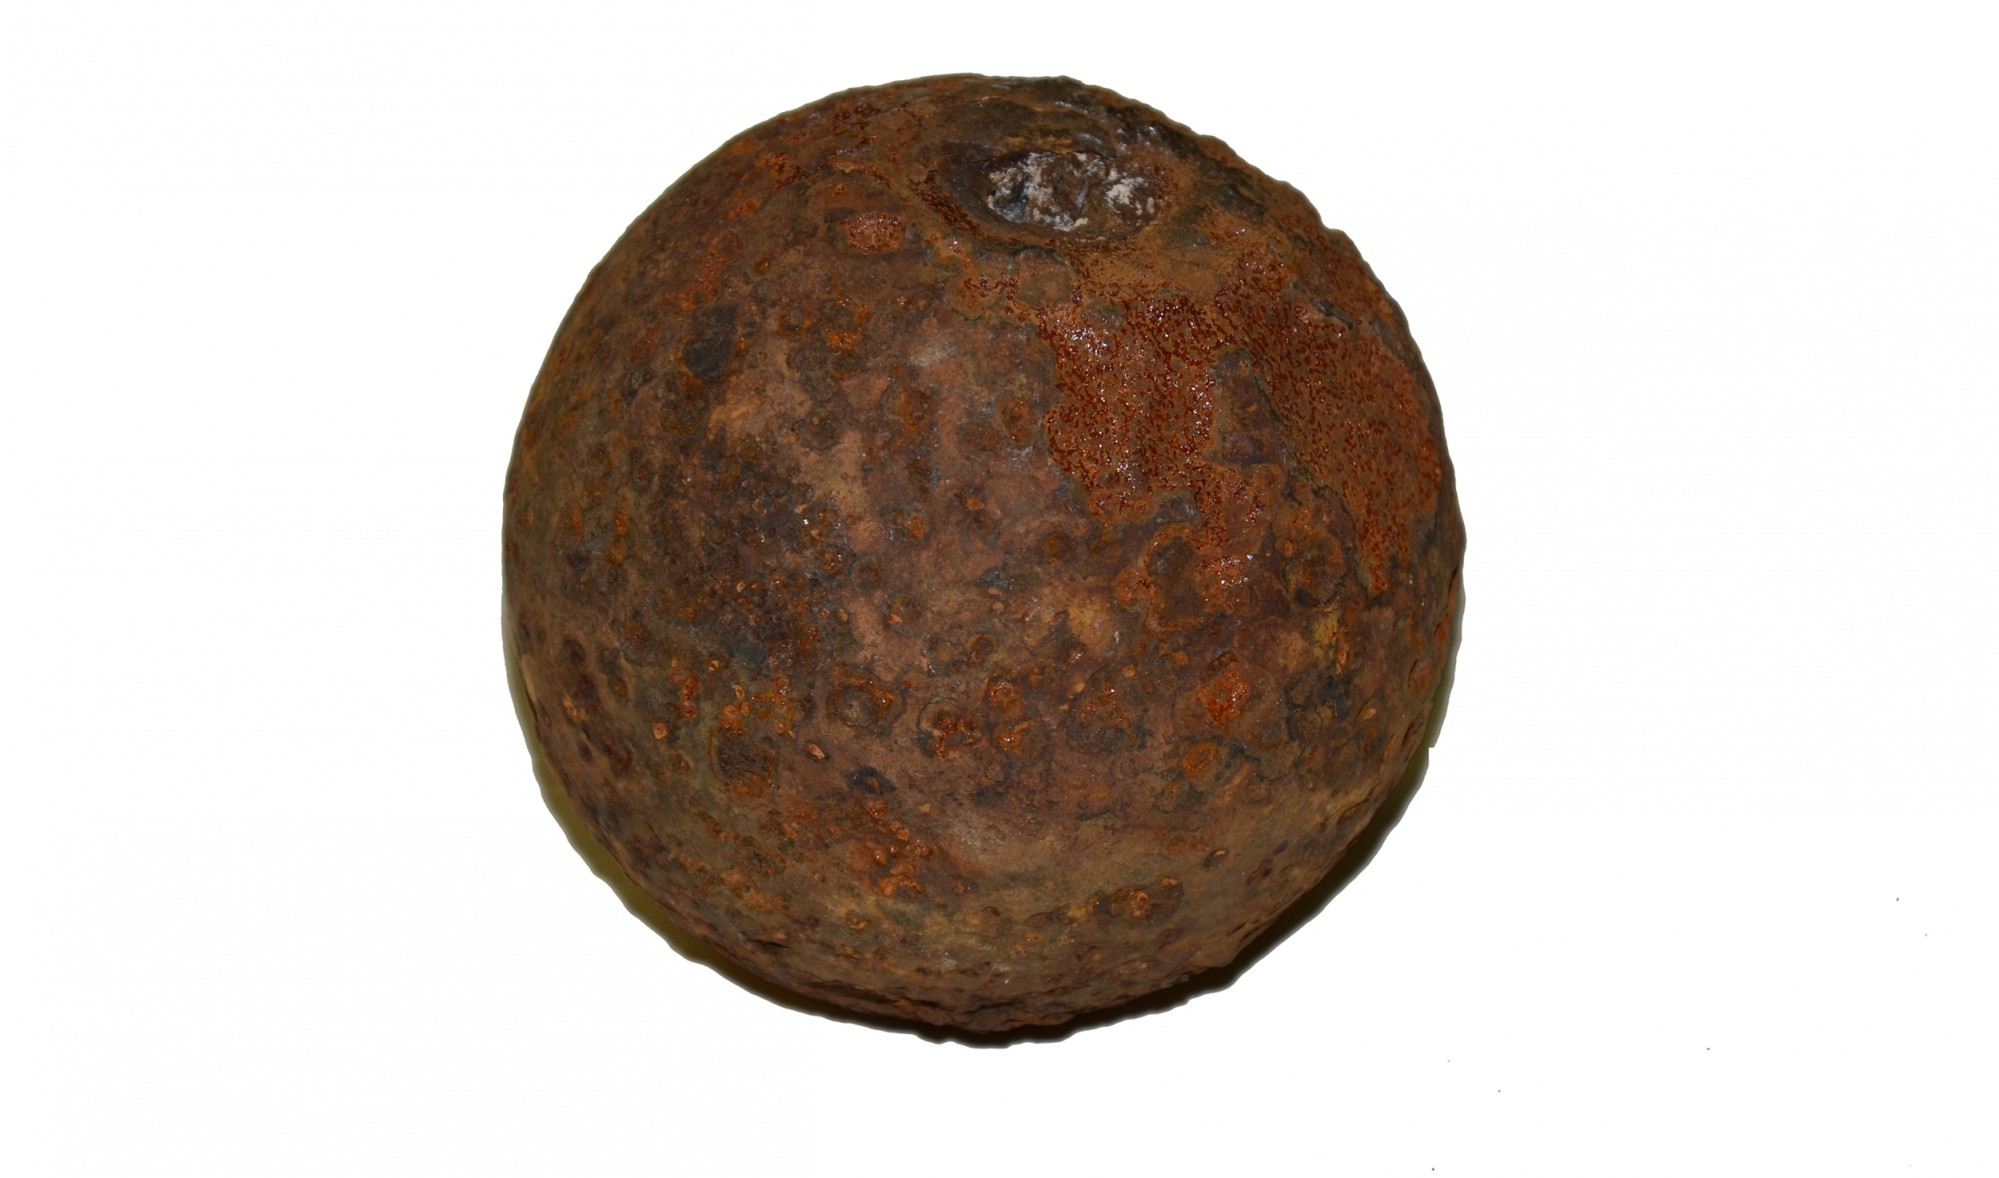 CONFEDERATE 4.52 INCH 12 PDR SPHERICAL SHELL WITH REMAINS OF WOODEN FUSE PLUG